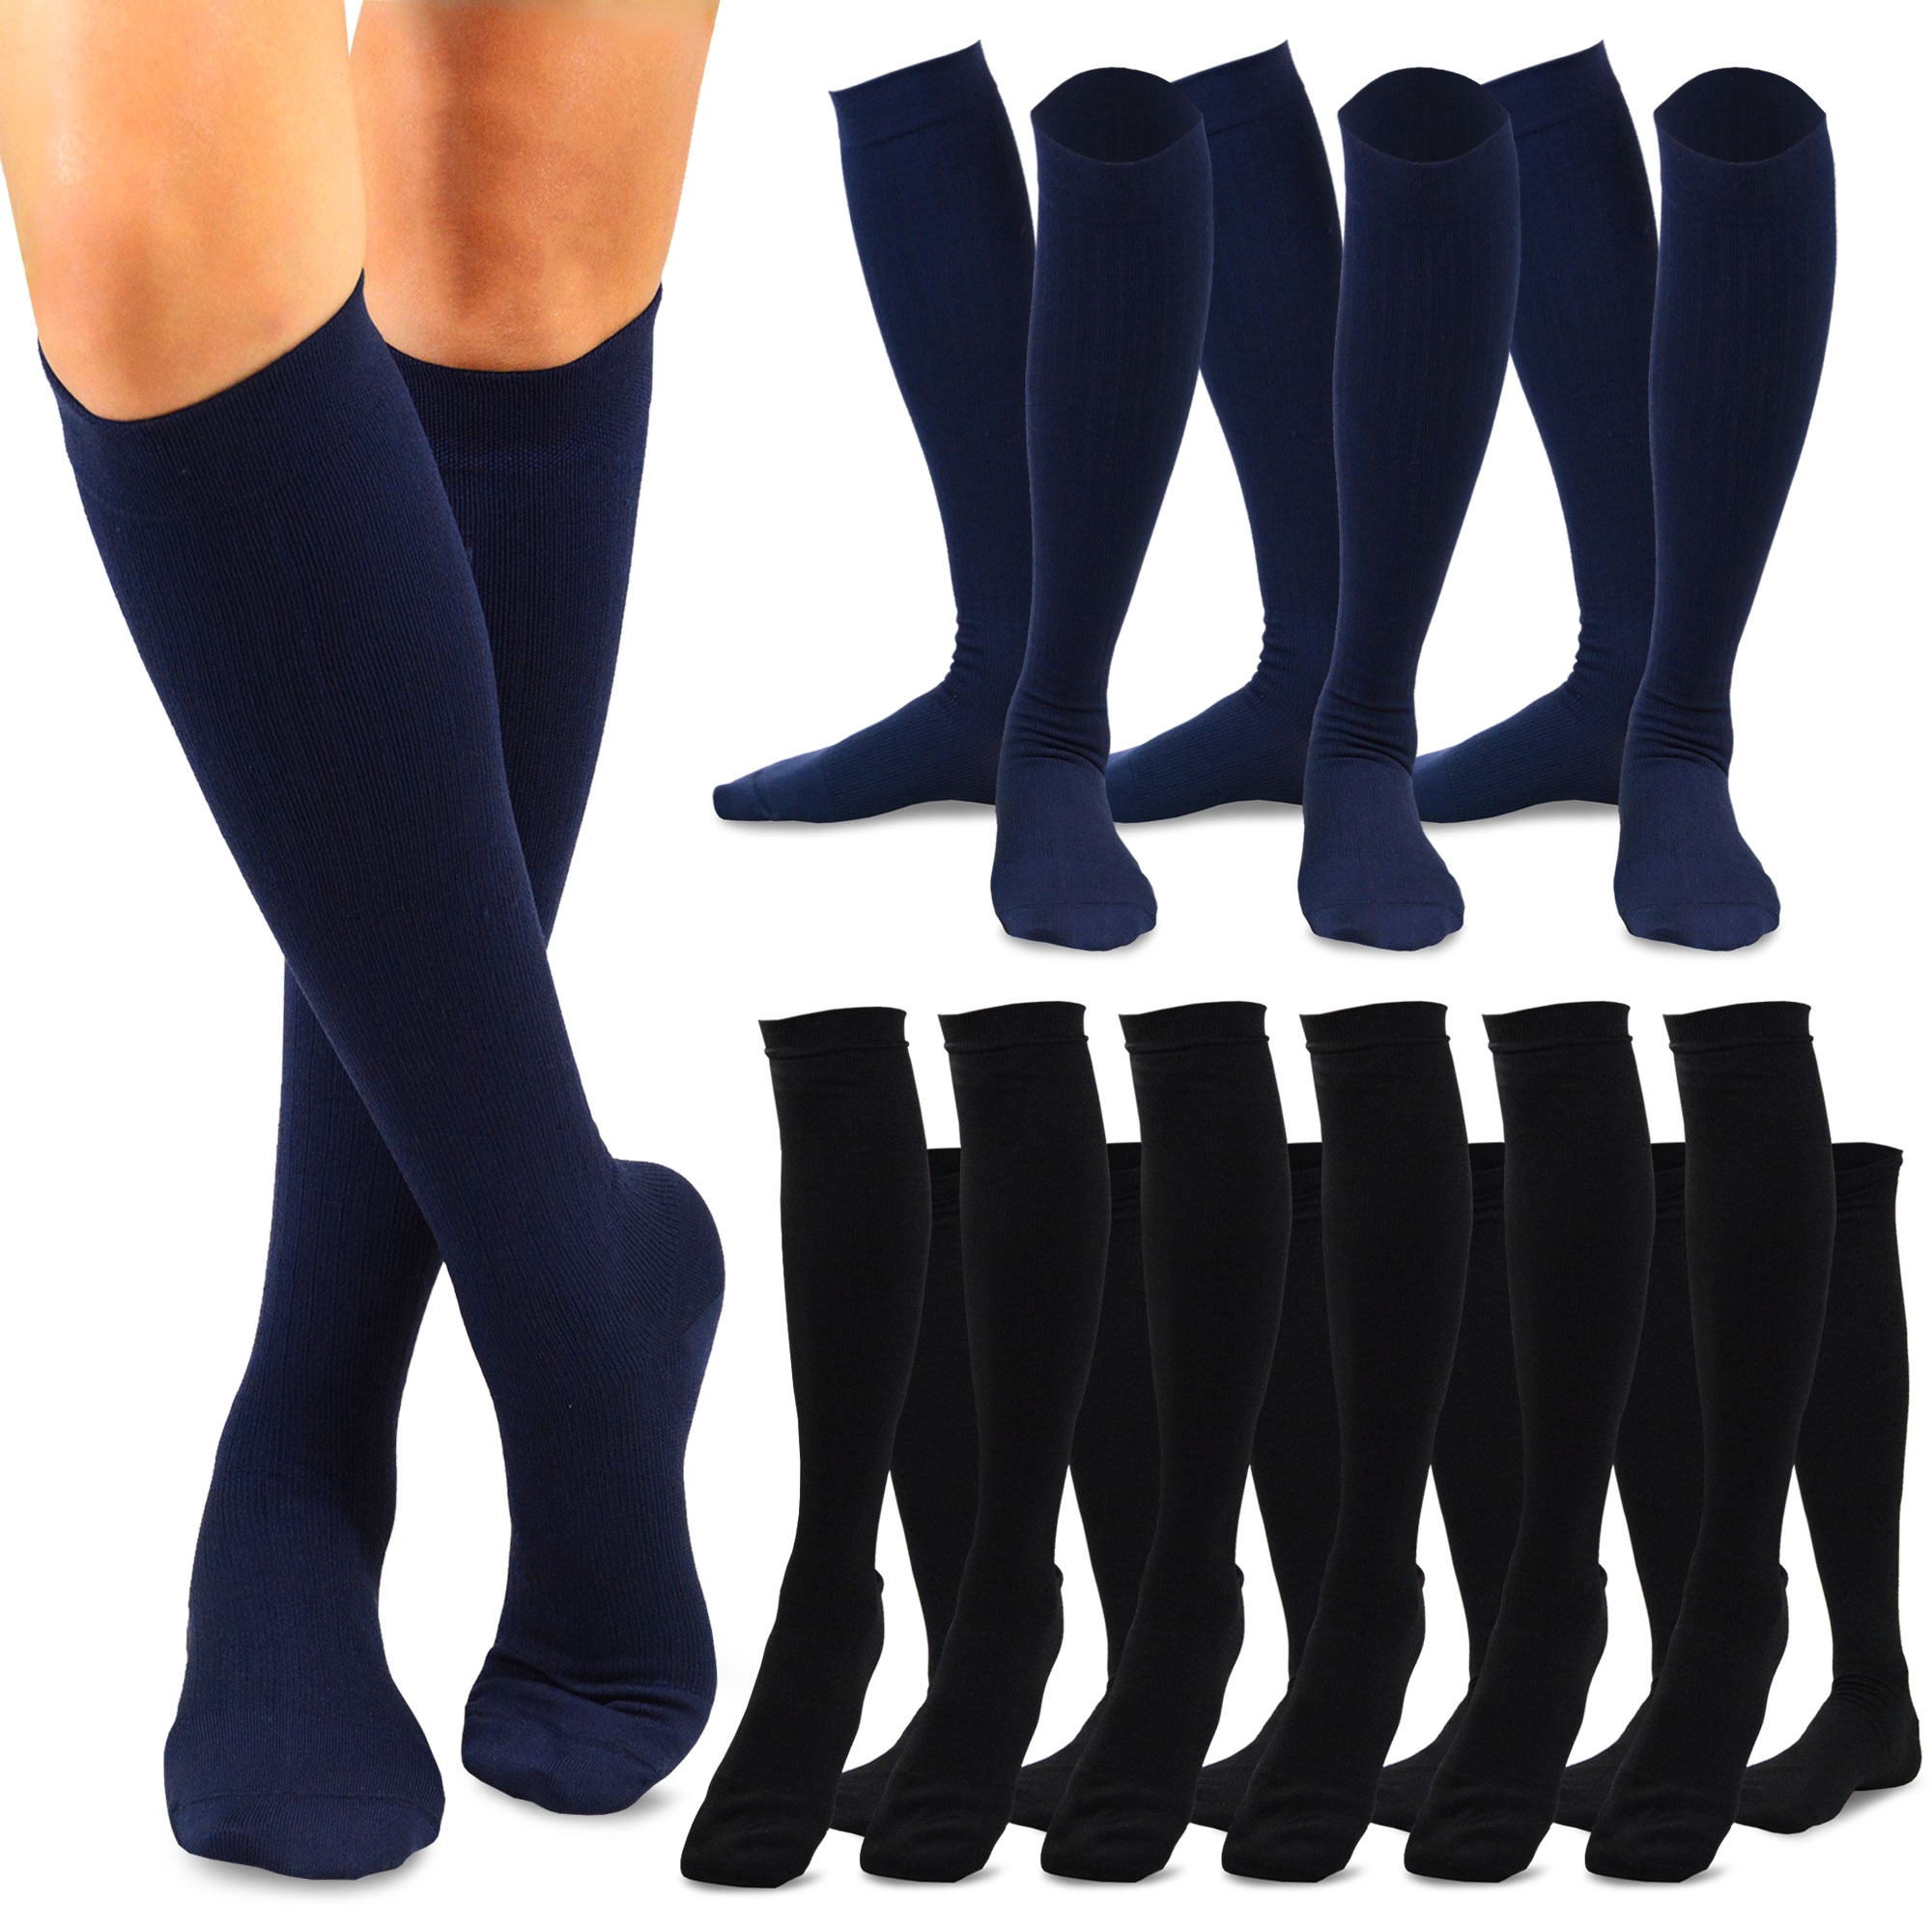 5ac46bf40d TeeHee Microfiber Compression Knee High Socks with Rib 9-Pack (Black ...